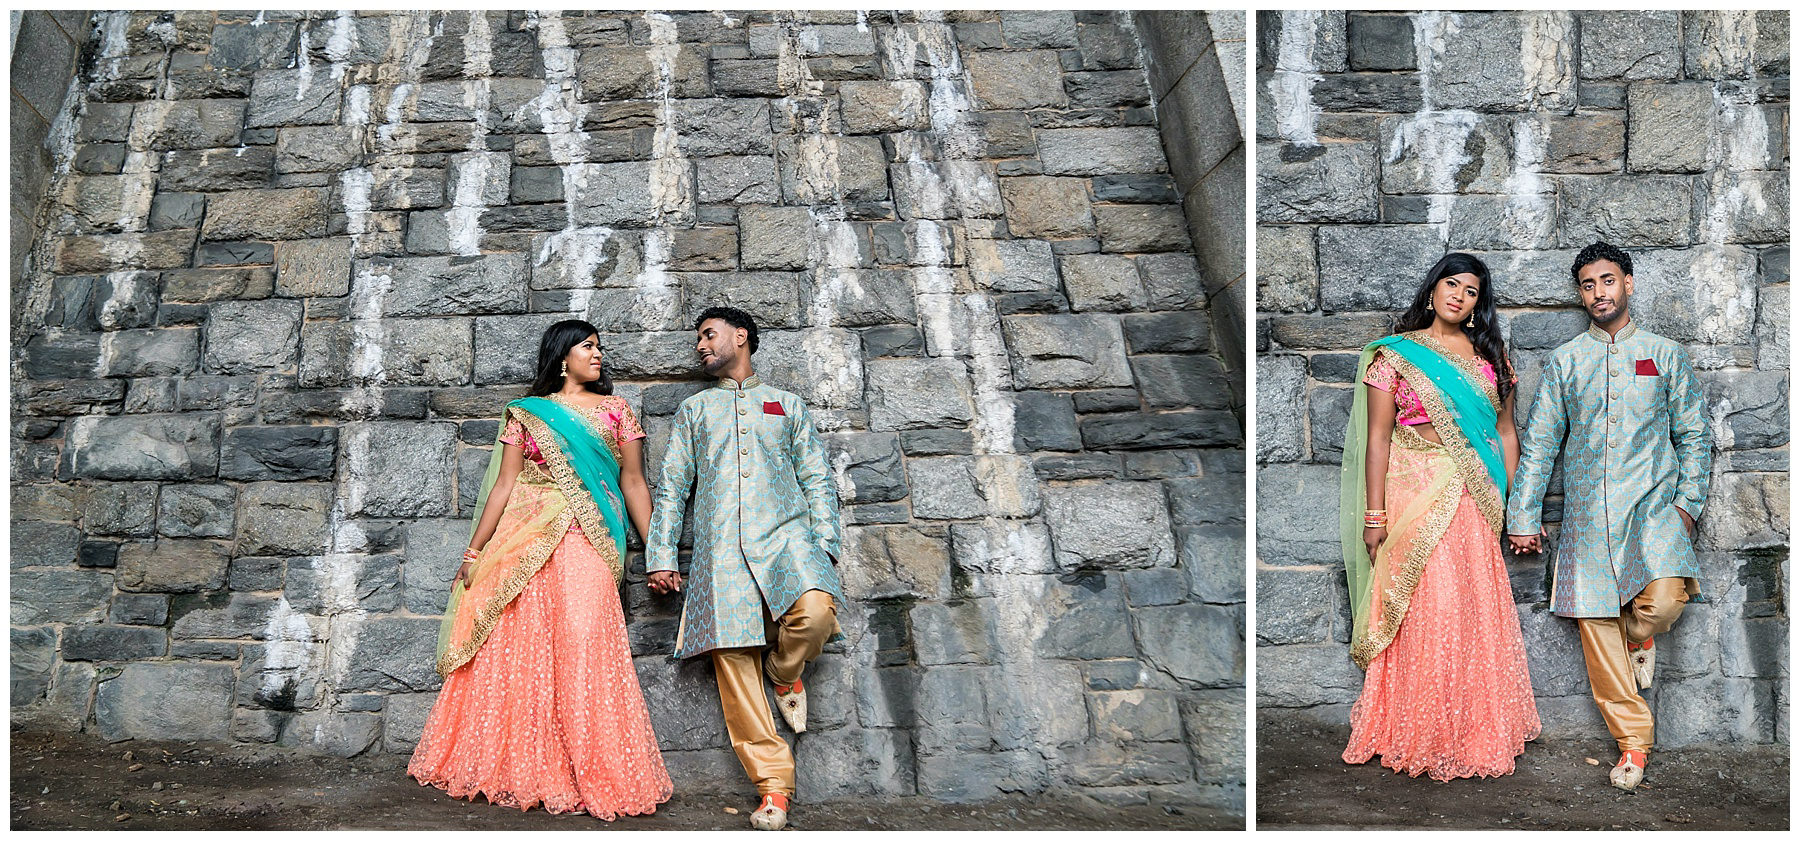 fort-tysons-park-new-york-engagement-shoot-sibyl-jithin-15.jpg